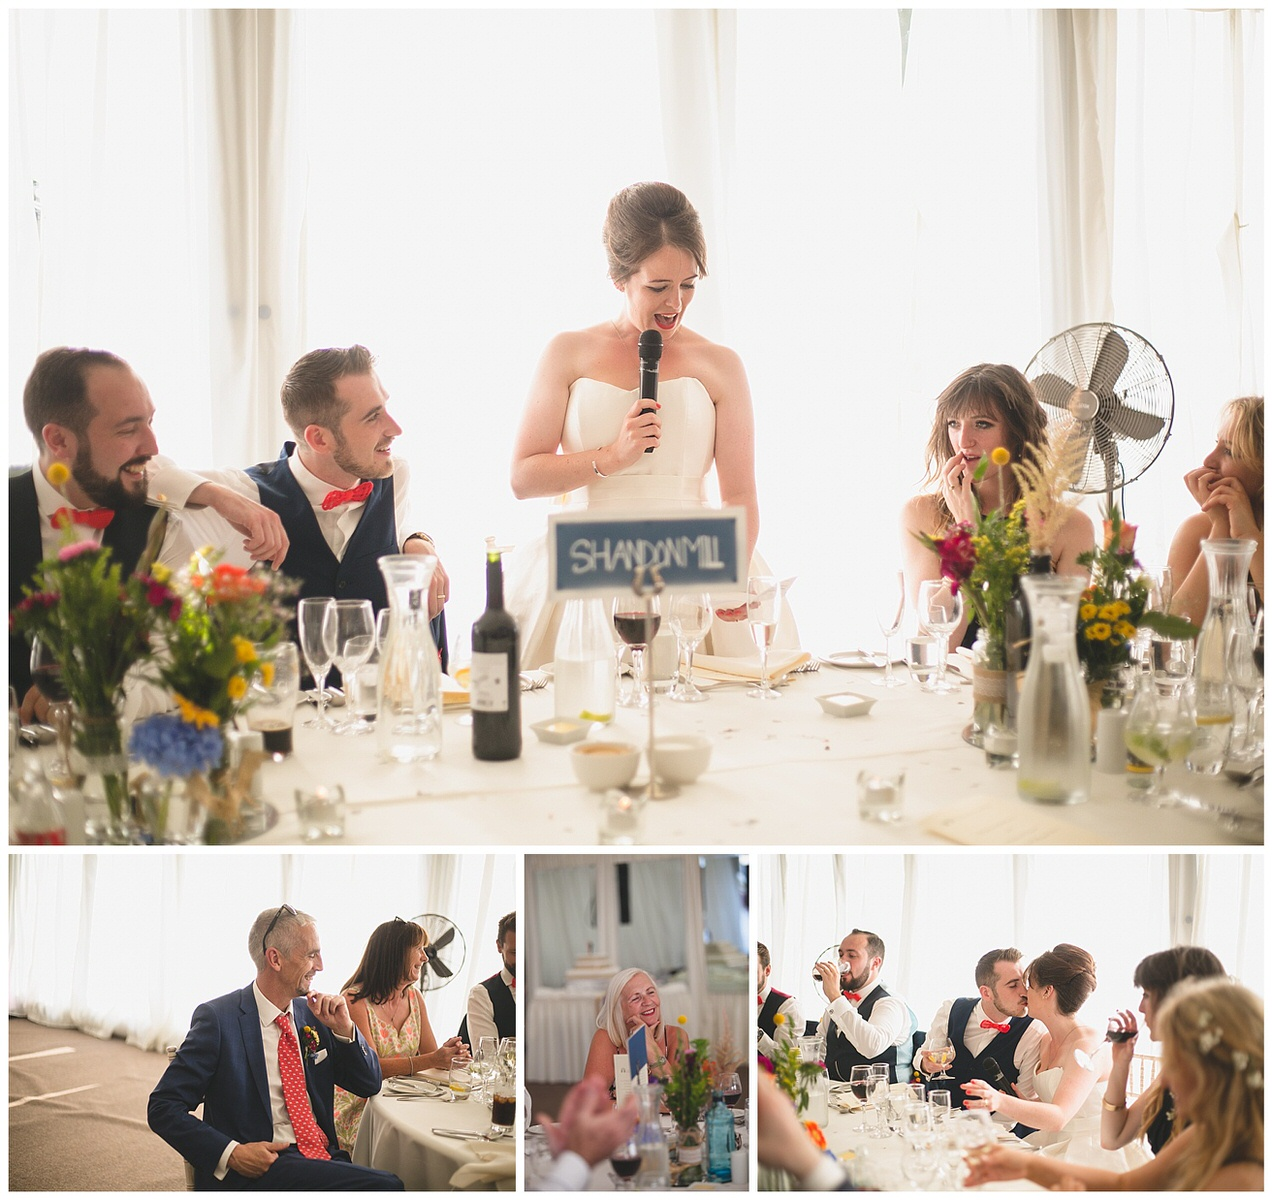 Bride gives s wedding toast and speech